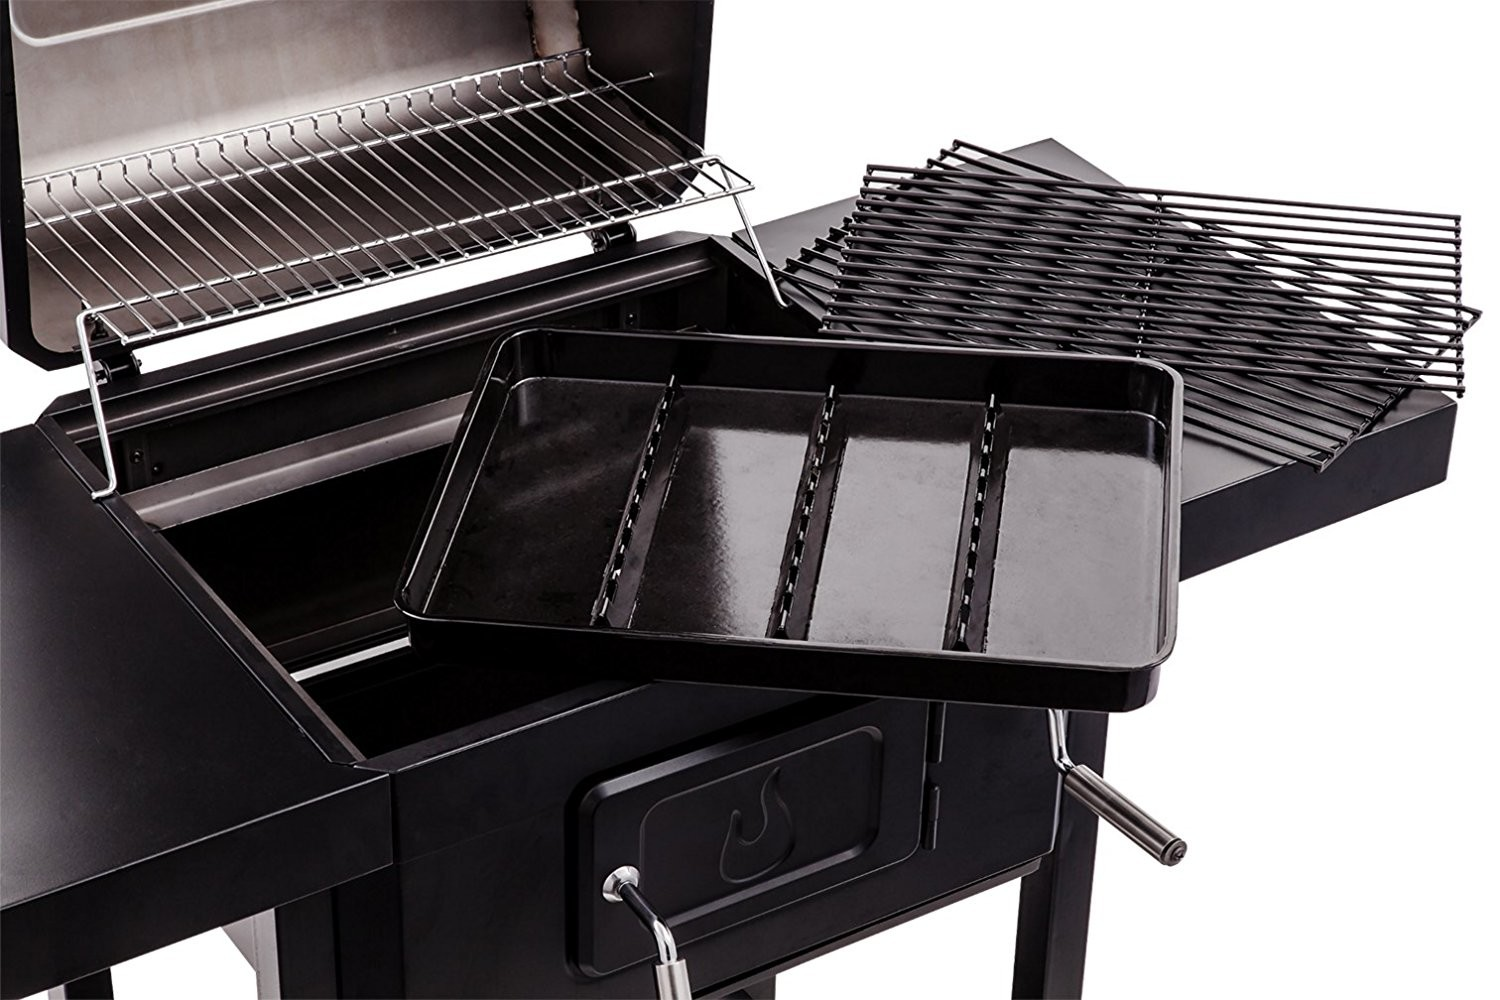 michaels charcoal grill - High quality